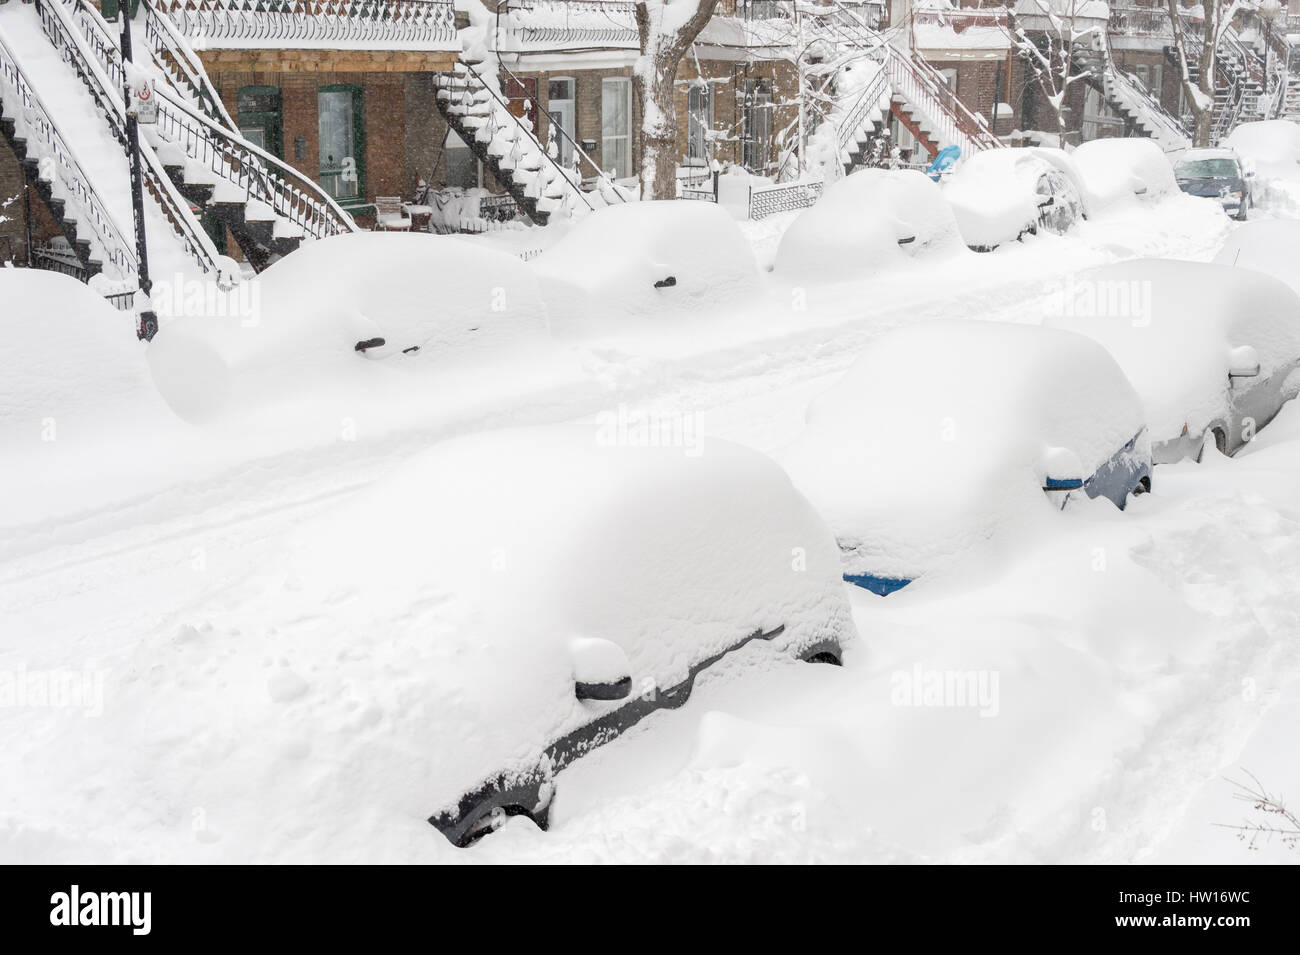 Montreal, CA - 15 March 2017: Powerful snow storm Stella pounds Montreal and leaves up to 60cm of snow. - Stock Image